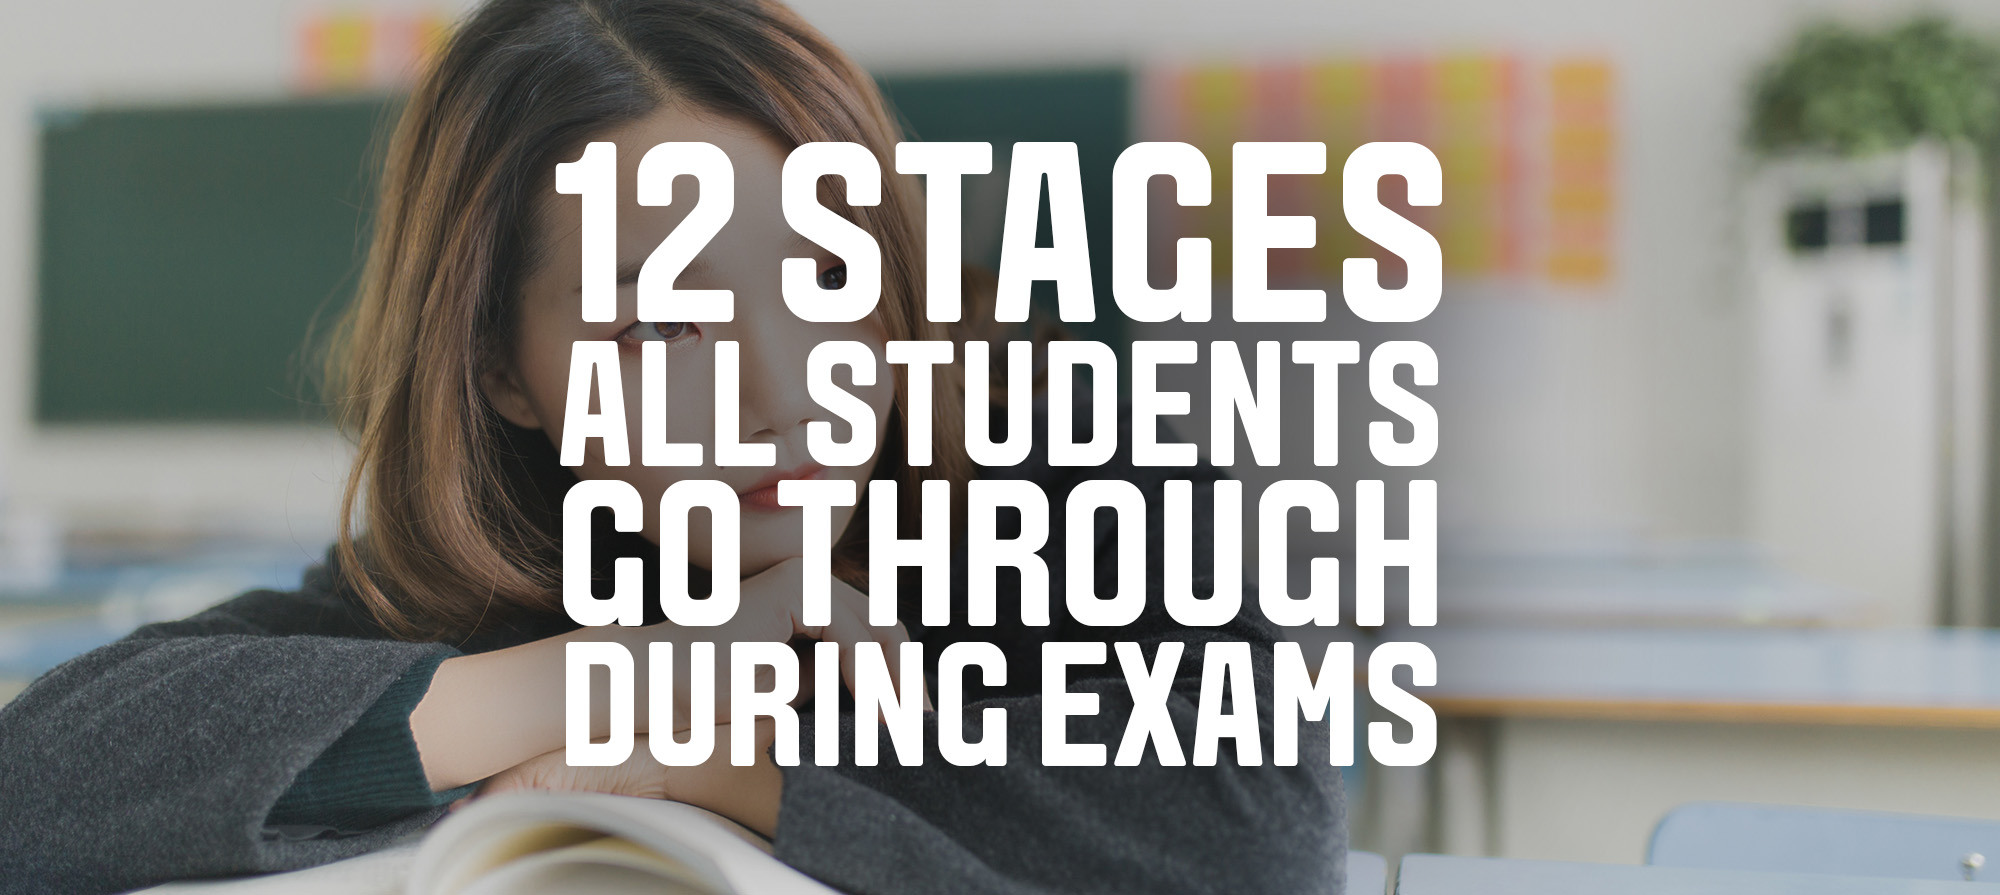 12 stages all students go through during exams